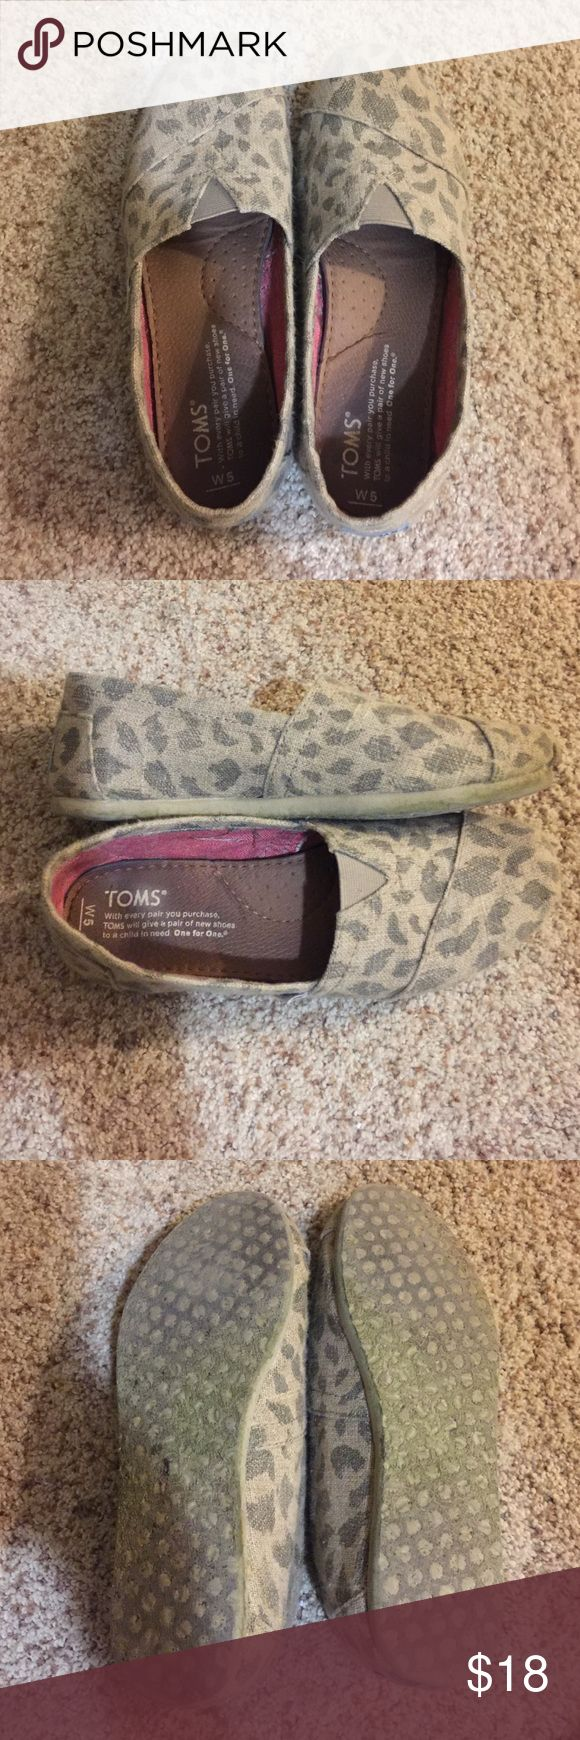 Leopard Toms EUC size 5 Leopard Toms EUC size 5. Smoke and pet free home. Very comfortable! TOMS Shoes Flats & Loafers